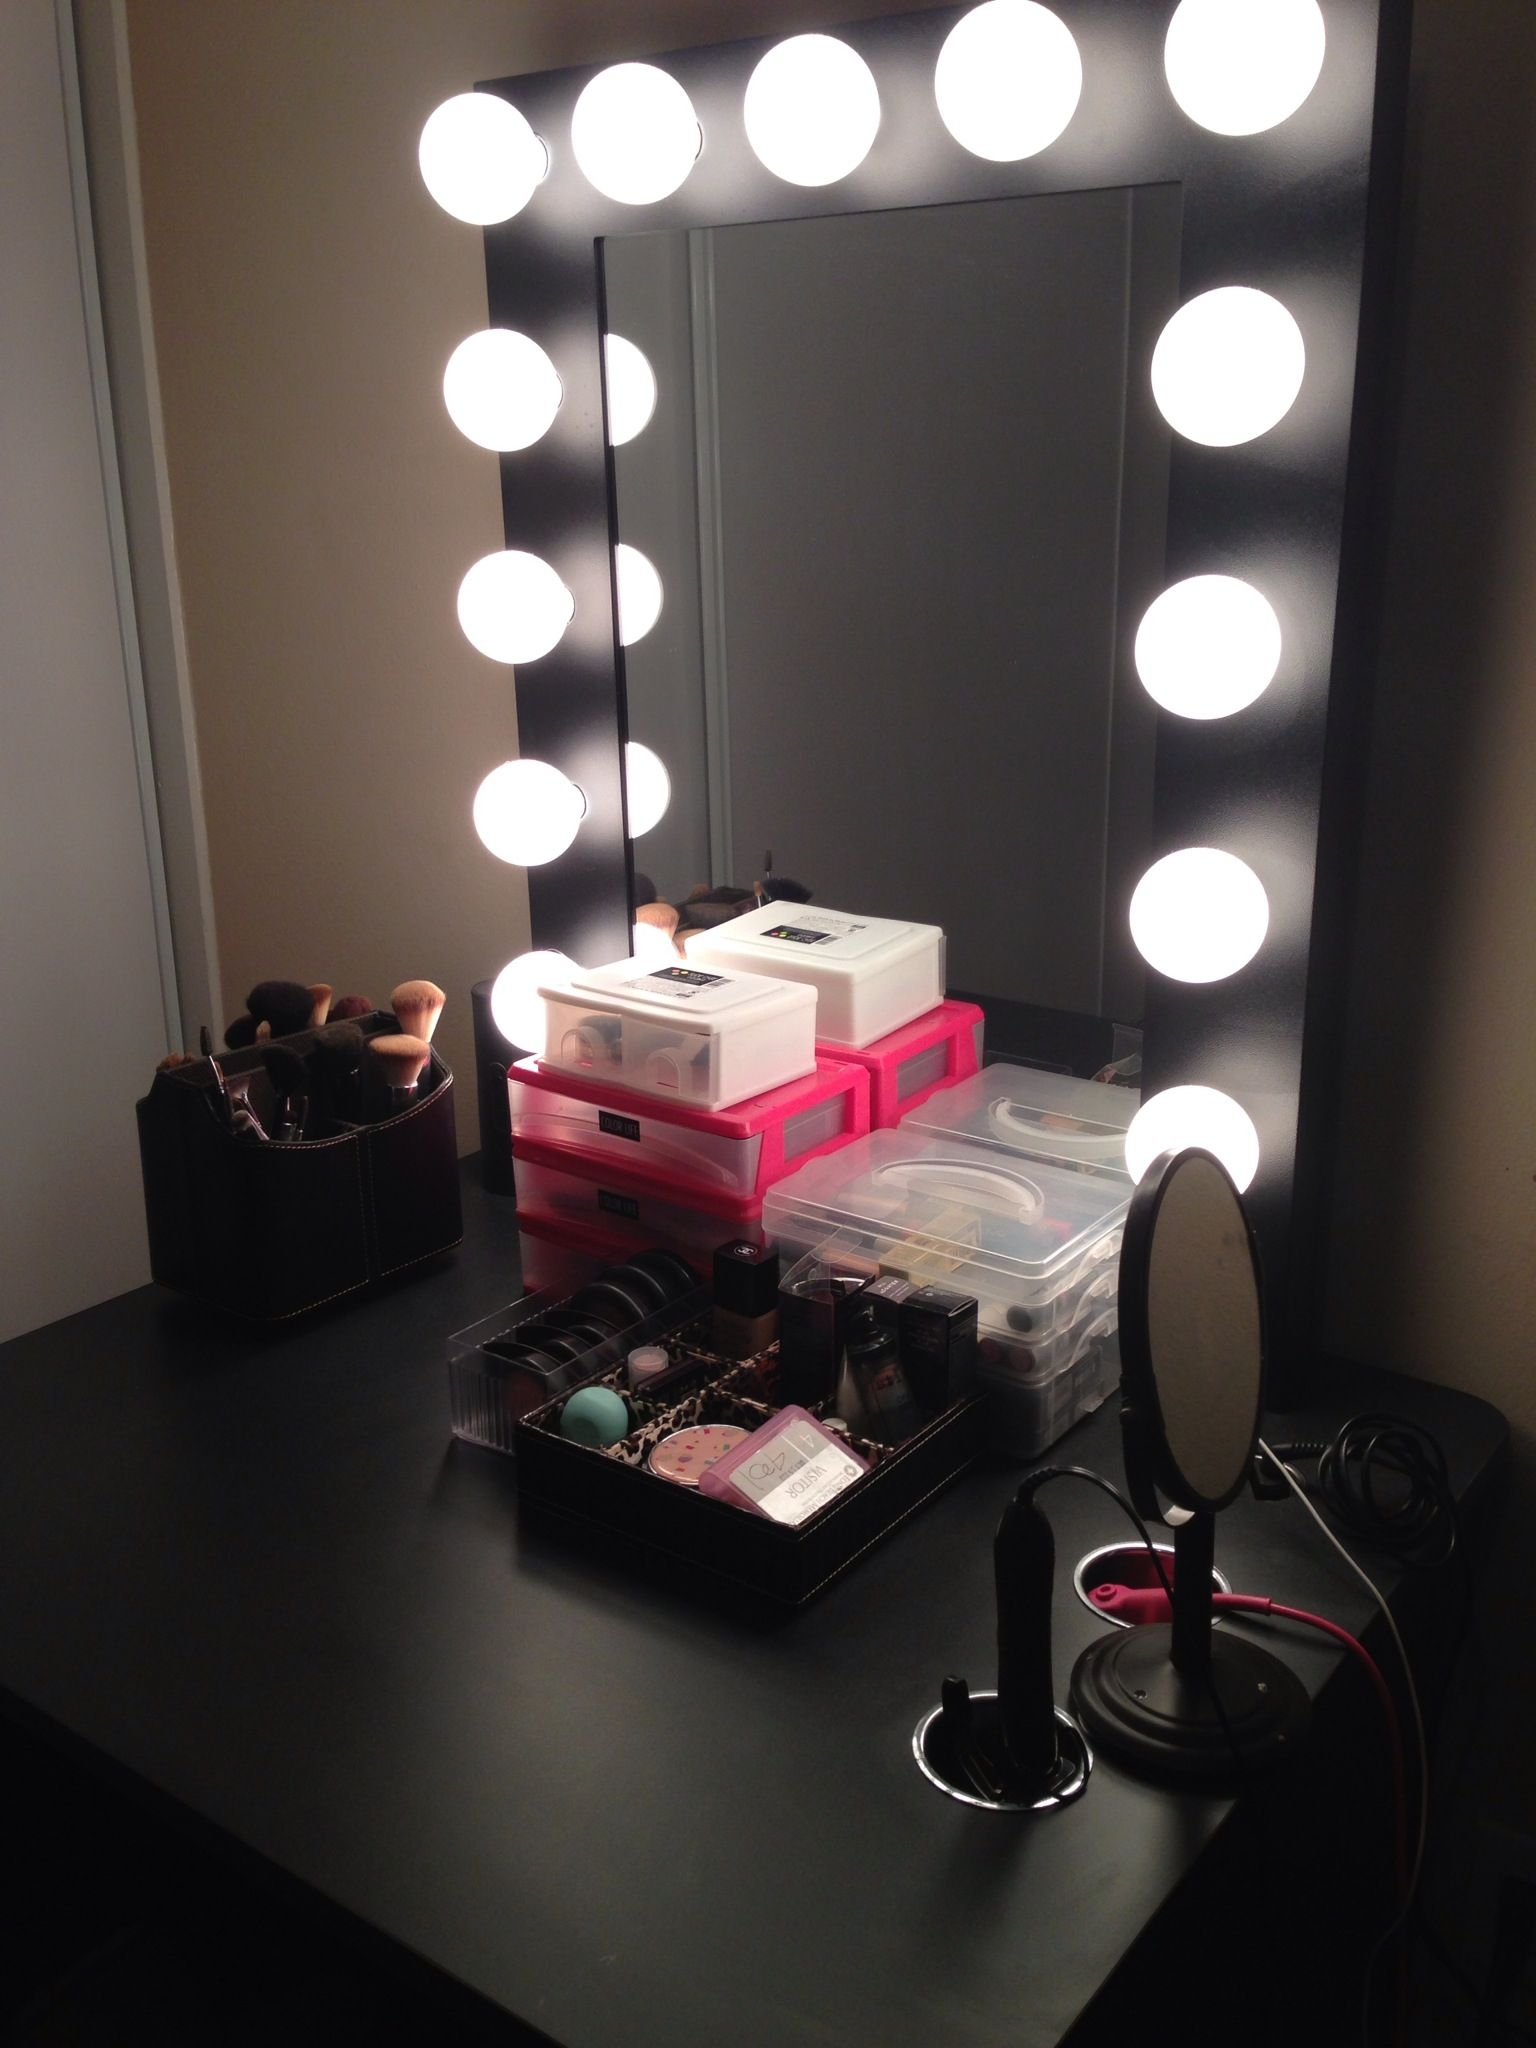 Vanity set #vanity girl hollywood Women s fashion Pinterest